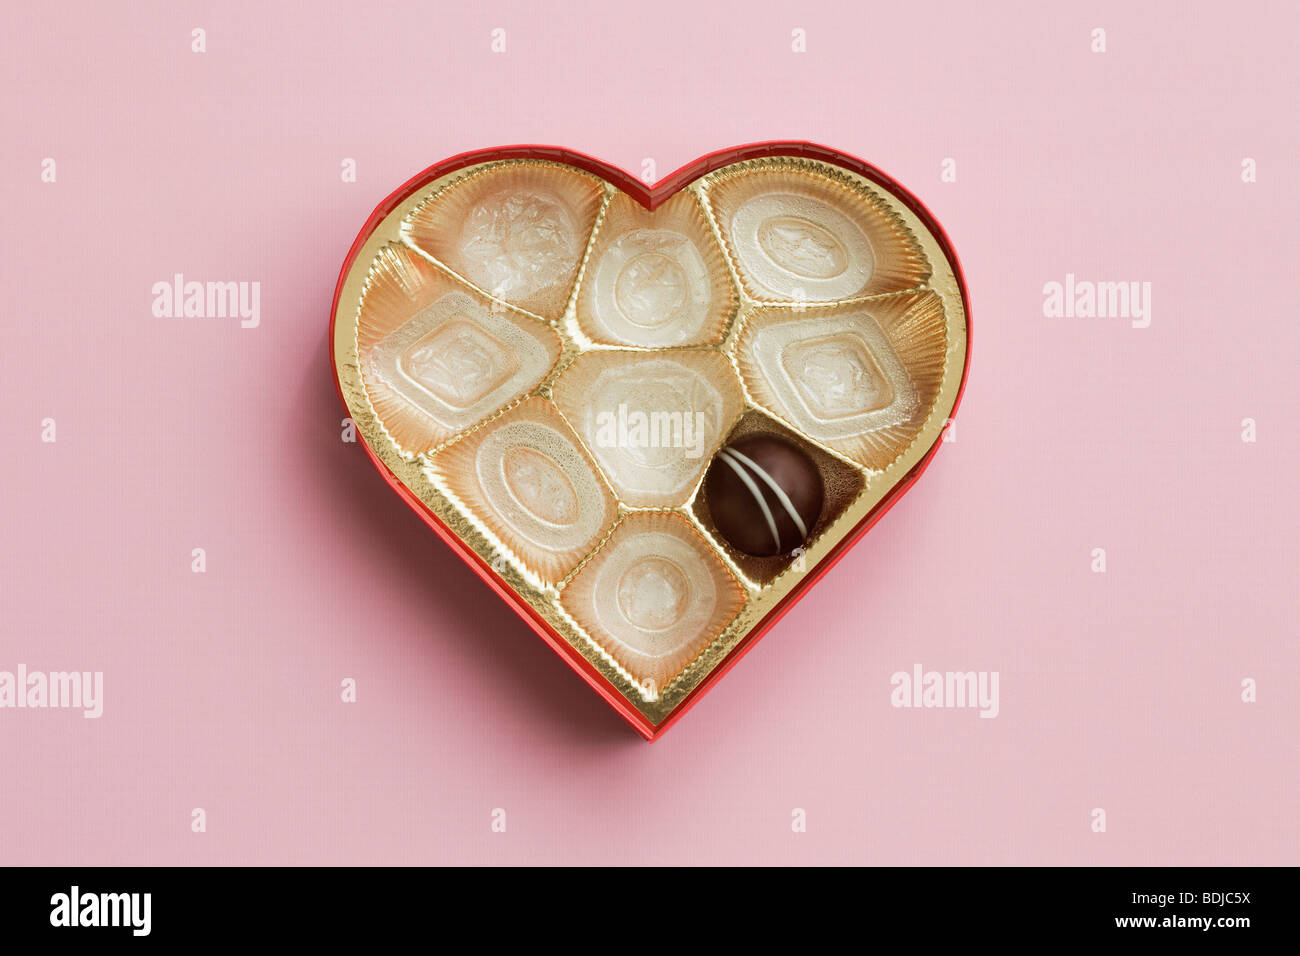 Still Life de Heart-Shaped caja de bombones Foto de stock